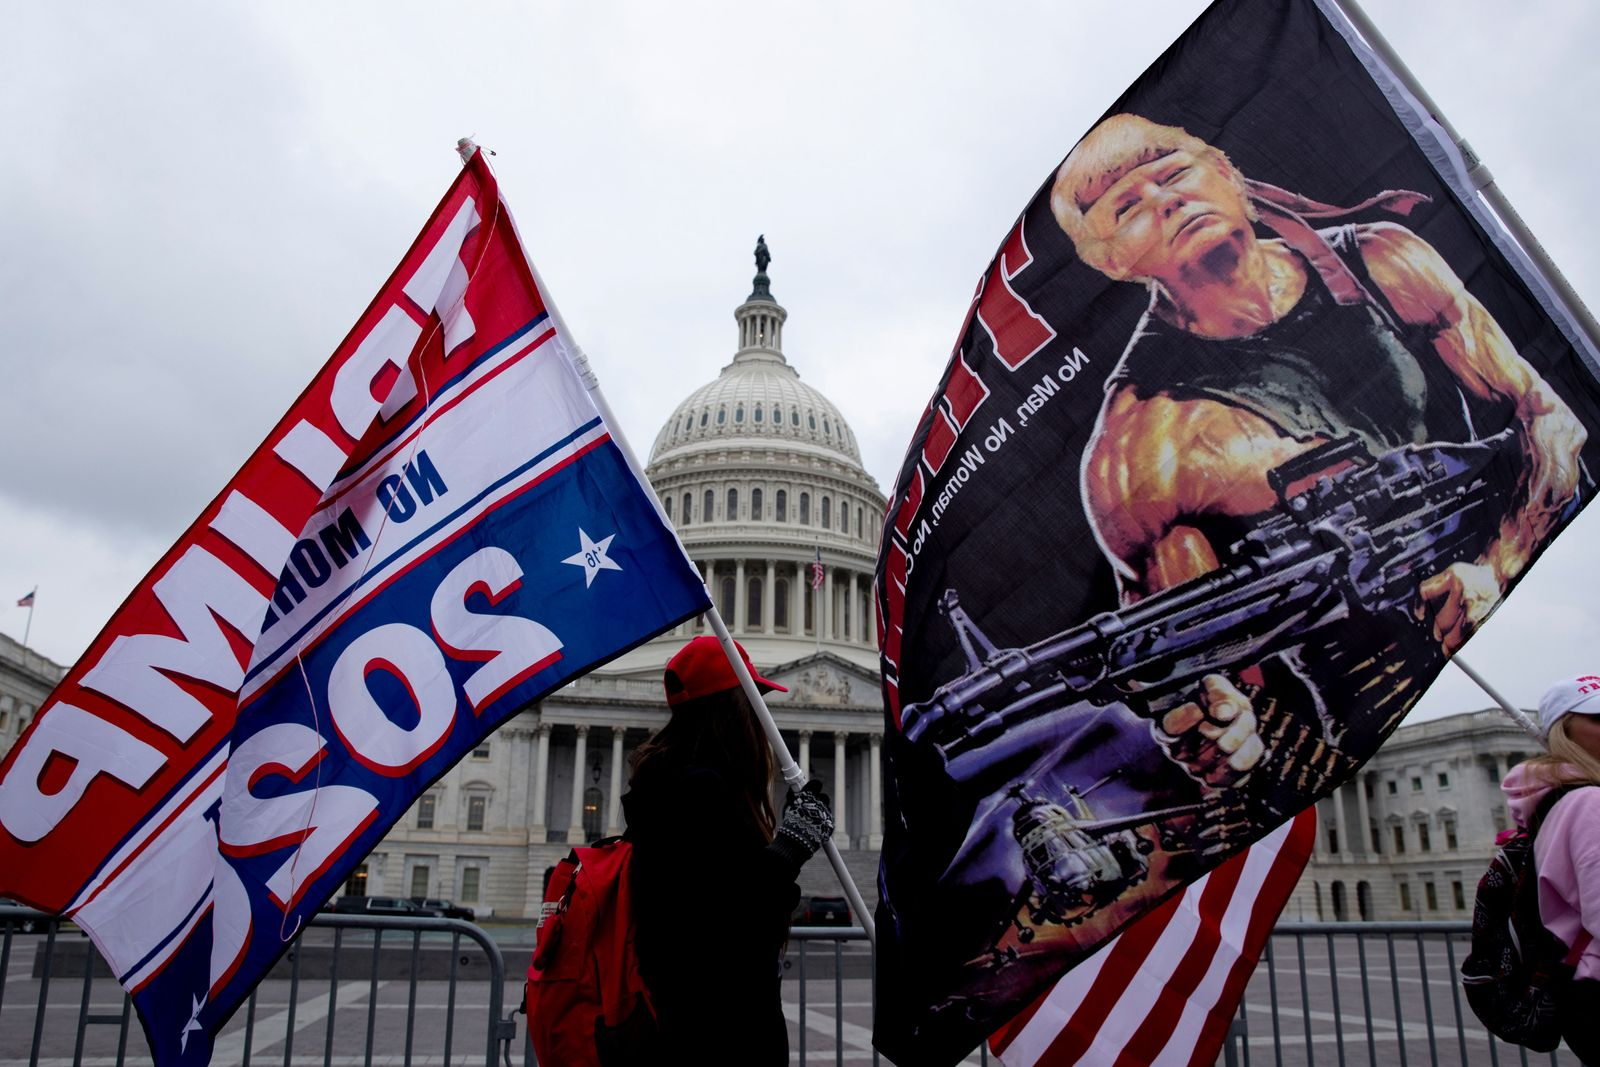 Right-wing protests ahead of US Congress counting electoral college votes, Washington, USA - 05 Jan 2021